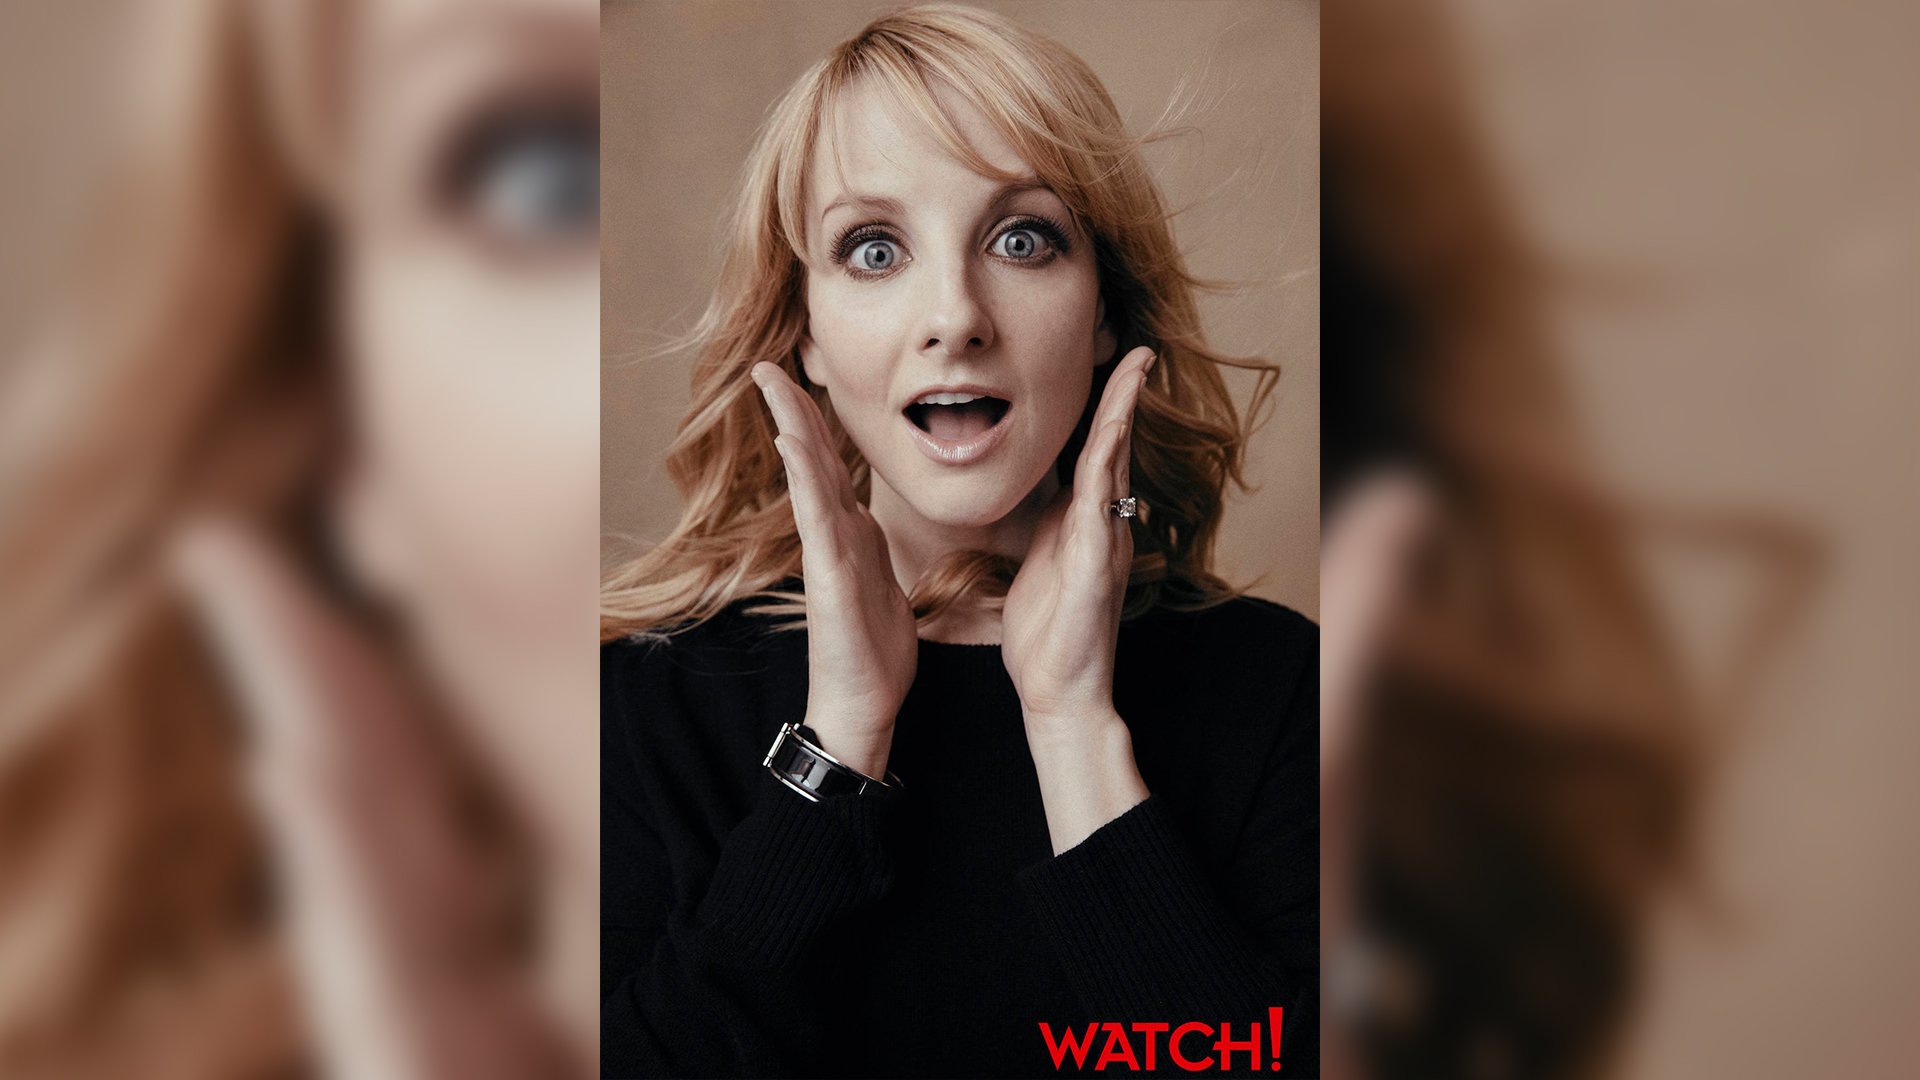 This exquisite photo of Melissa Rauch is eye-opening